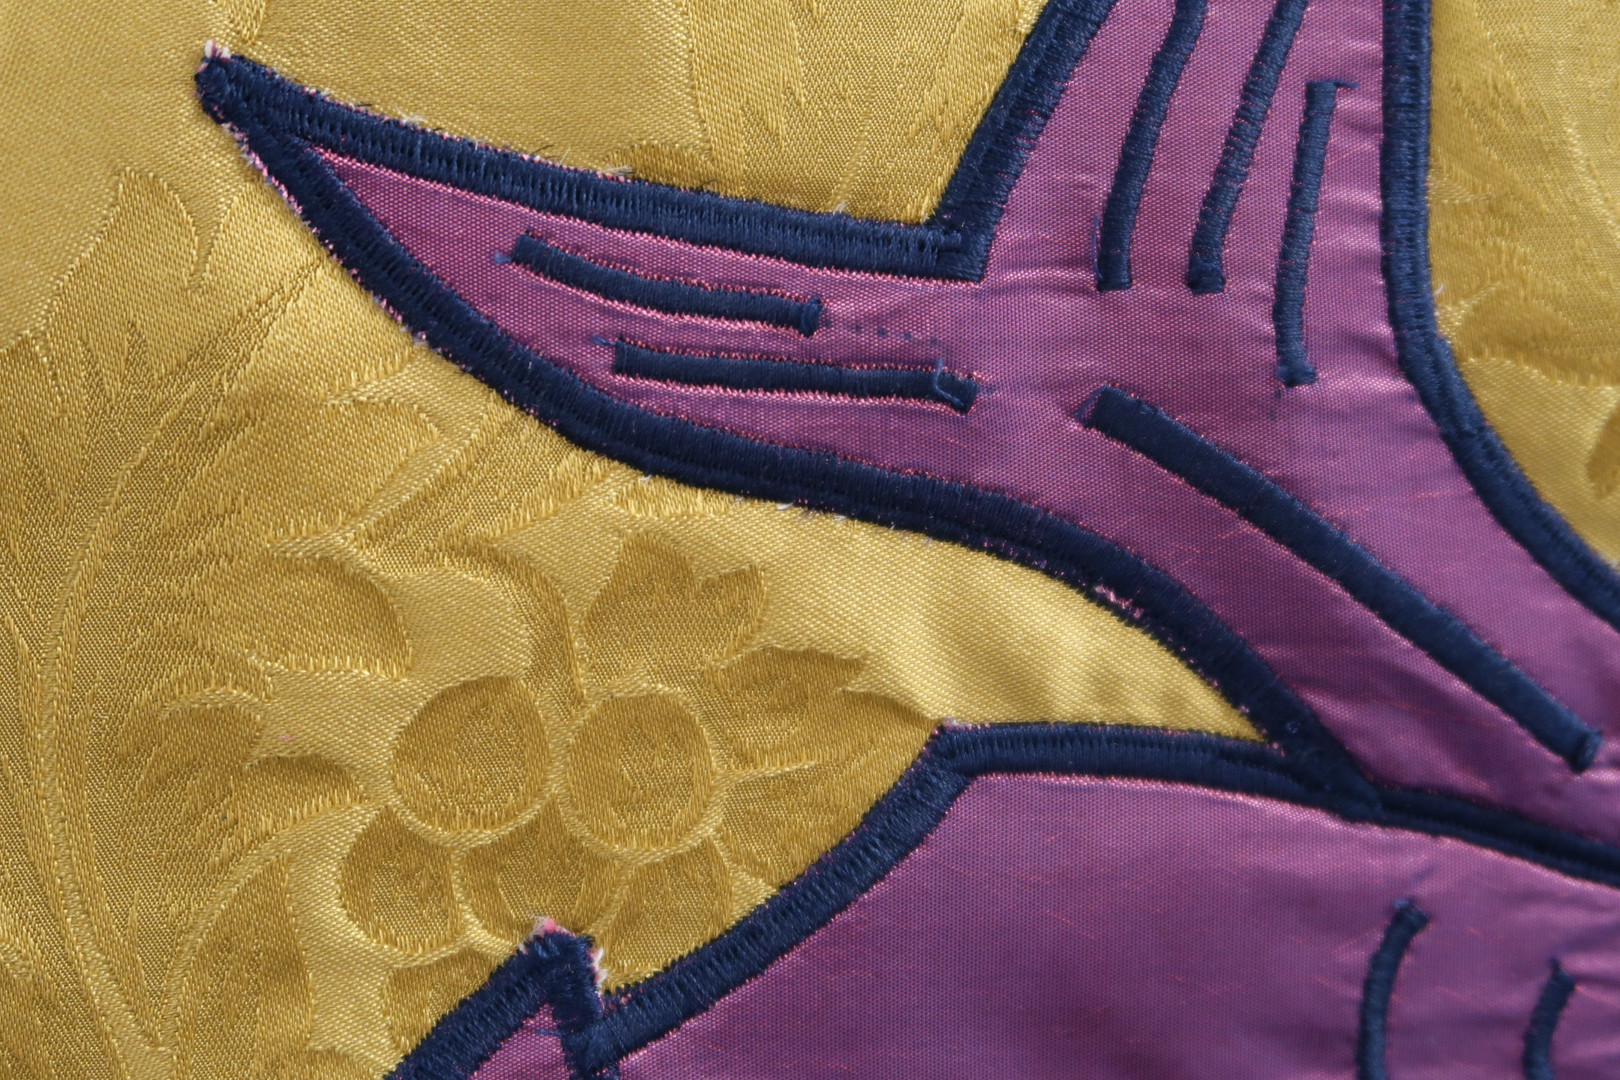 The motif was then transferred to the final fabric, backed with interfacing, and satin stitched around all raw edges, and design lines.